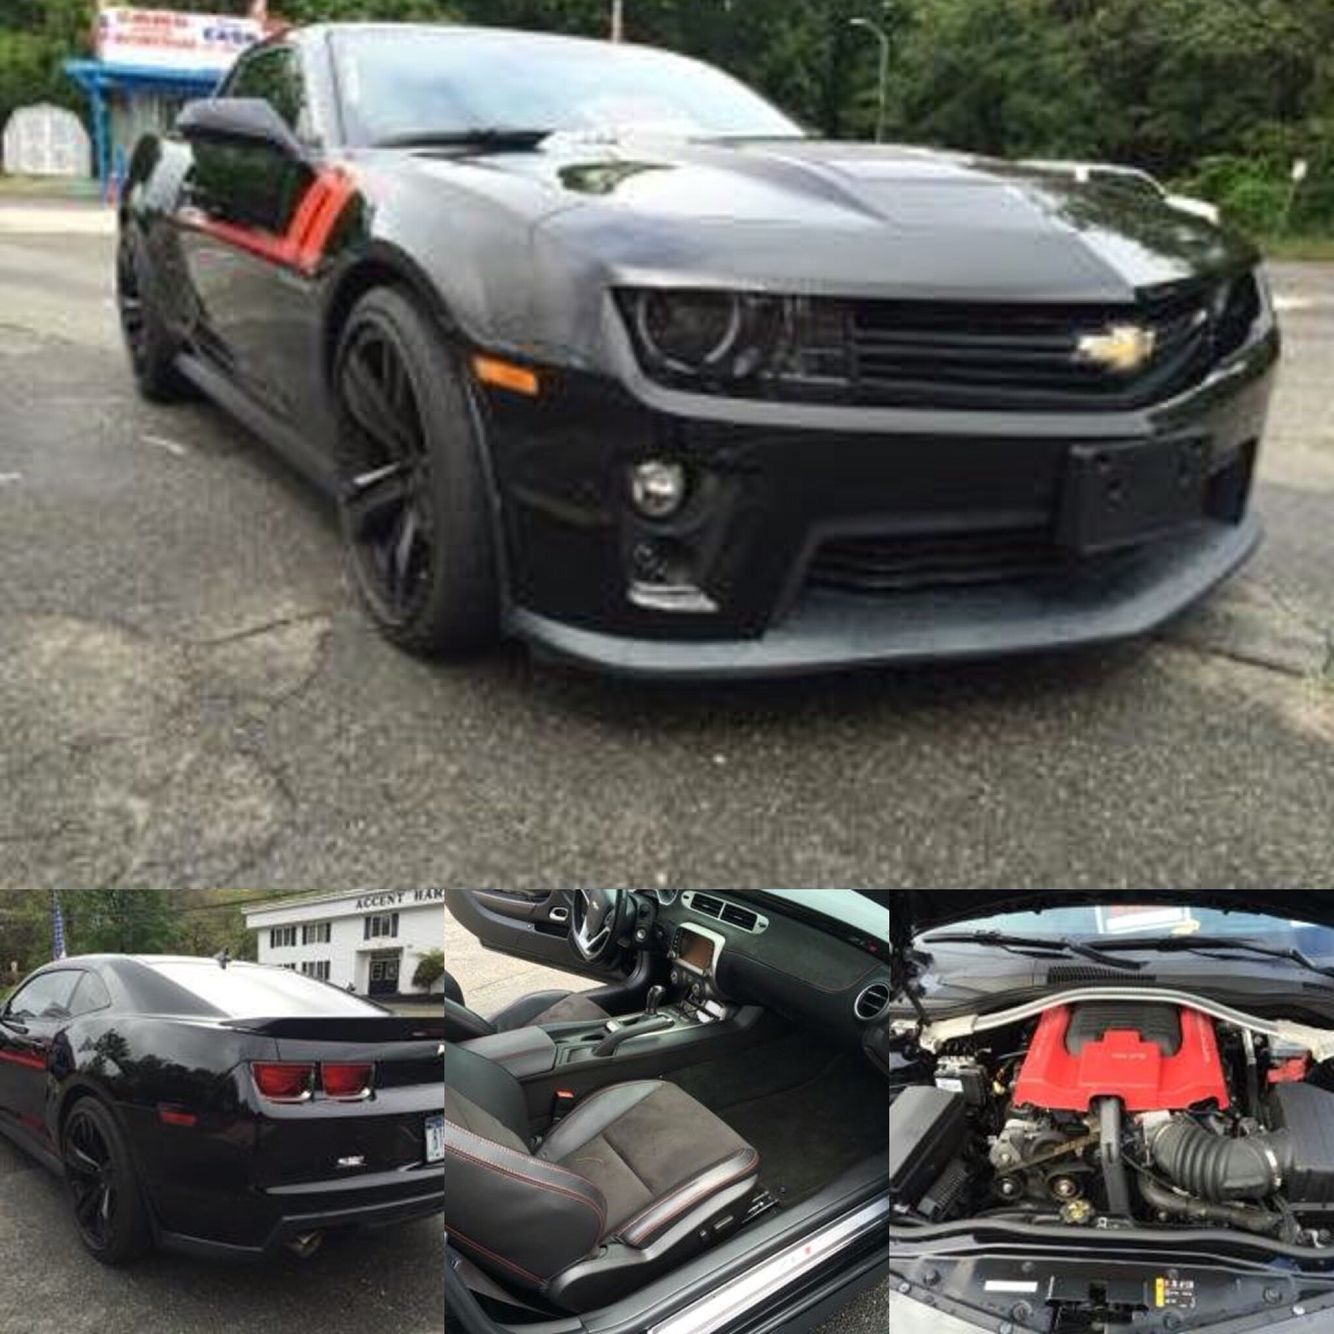 Camaro 2013 chevrolet camaro zl1 for sale : 2013 Chevrolet Camaro ZL1 For Sale Get the best value from your ...